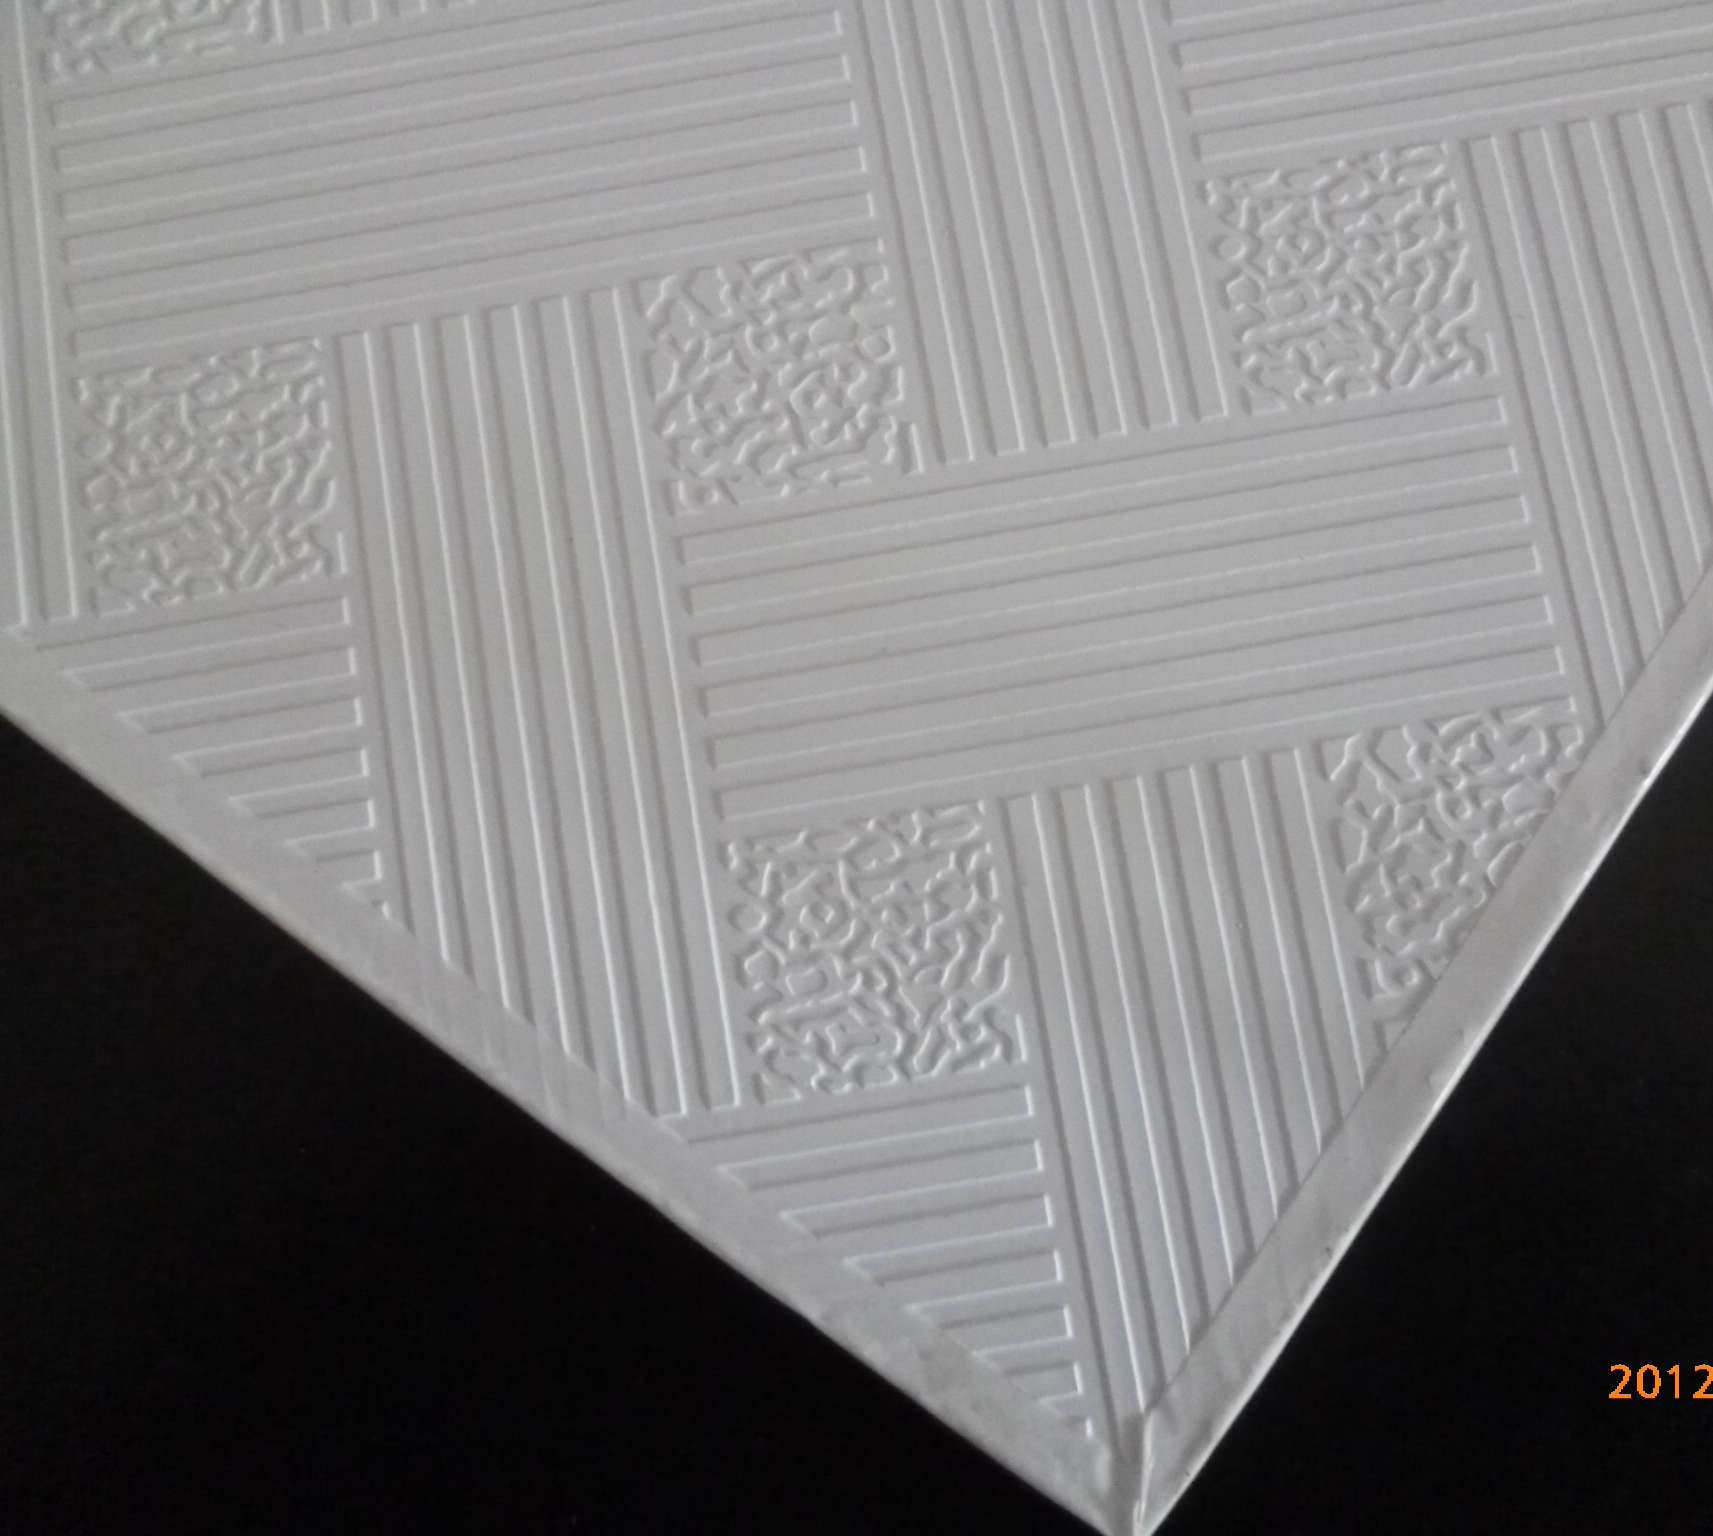 China pvc coated gypsum ceiling tile china pvc gypsum board pvc china pvc coated gypsum ceiling tile china pvc gypsum board pvc laminated gypsum board dailygadgetfo Gallery